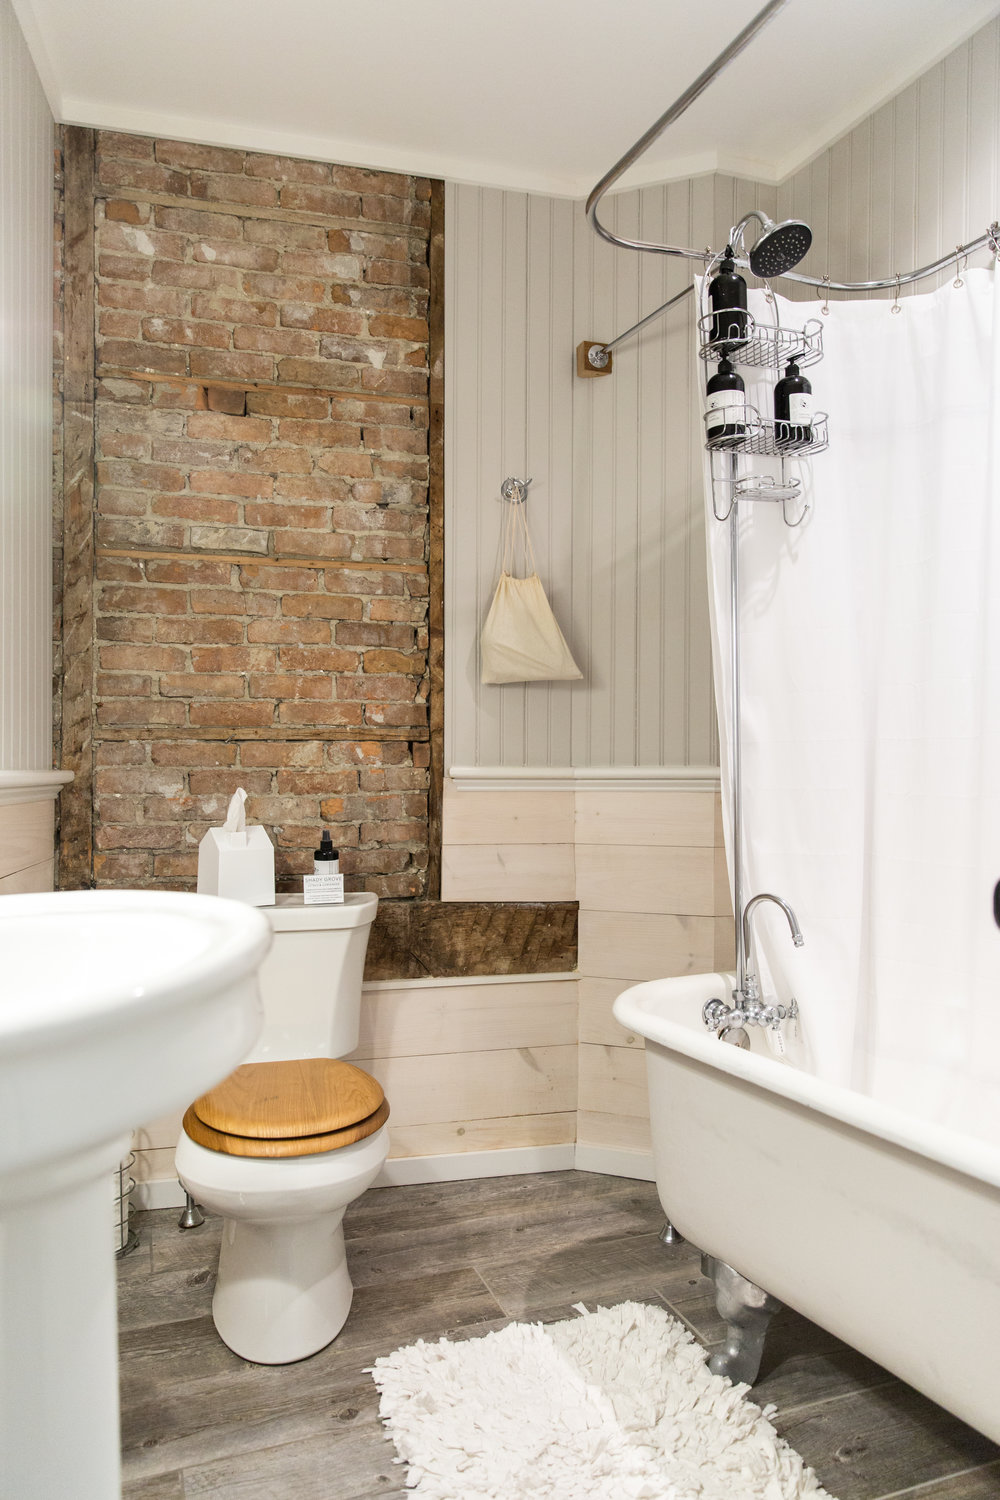 The Anne Marie Suite - bathroom with full tub and shower